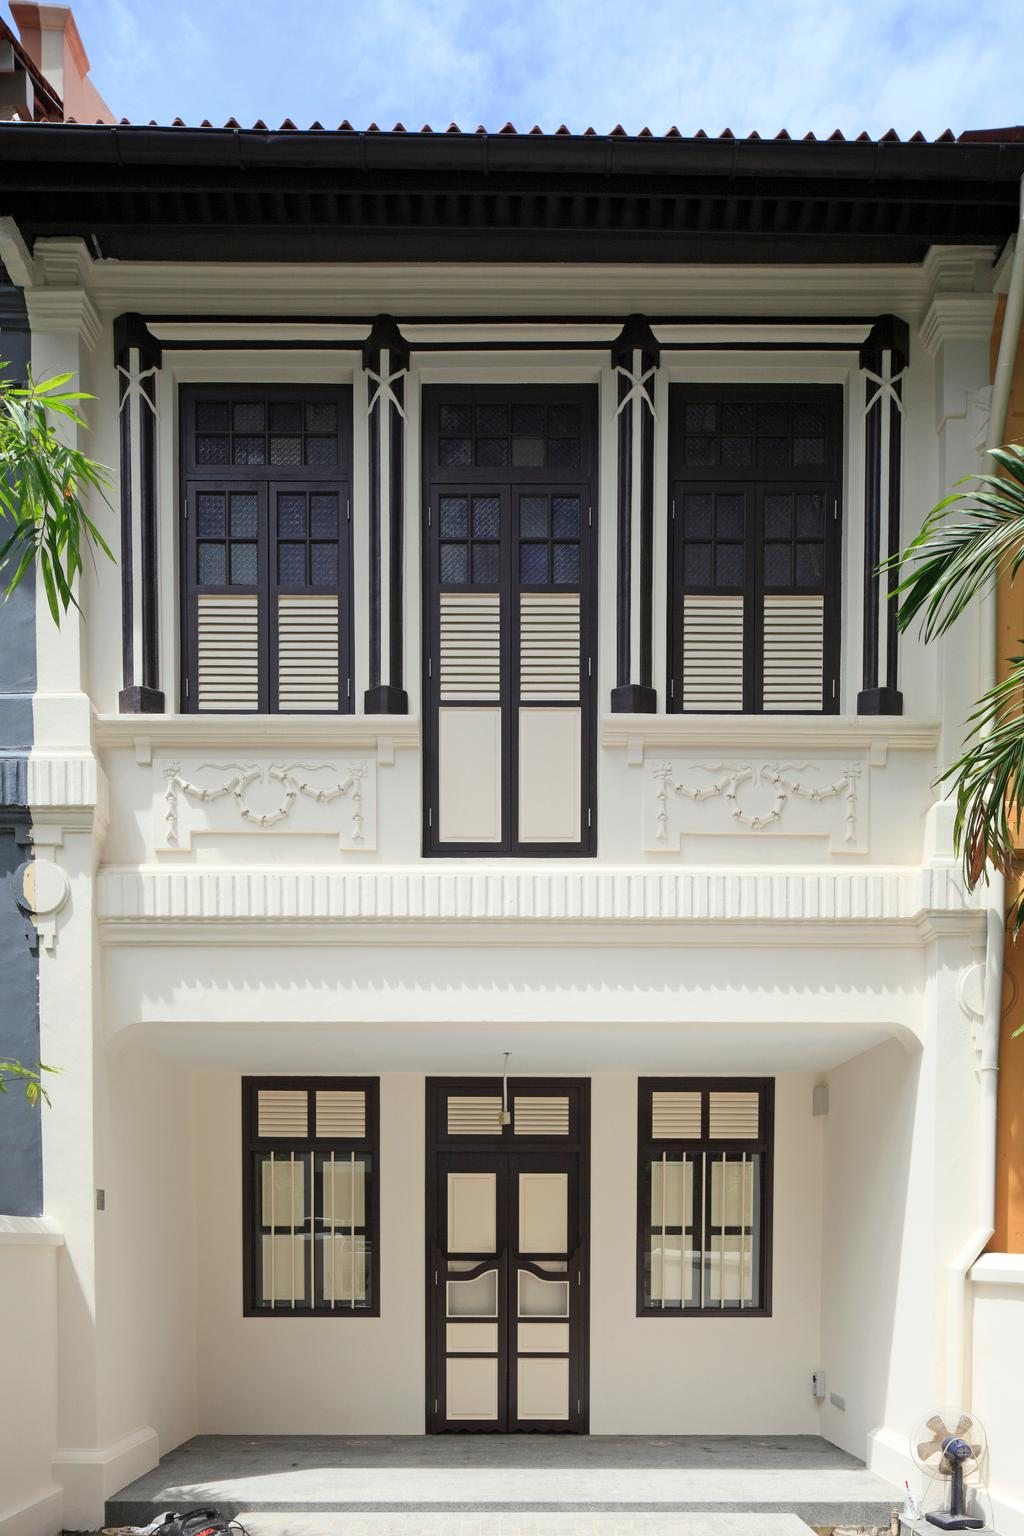 Traditional, Landed, Emerald House, Architect, Lekker Architects, Exterior View, Colonial Style House, Monochrome House, Black Window Frames, Black Framed Door, Colonial Windows, Flora, Jar, Plant, Potted Plant, Pottery, Vase